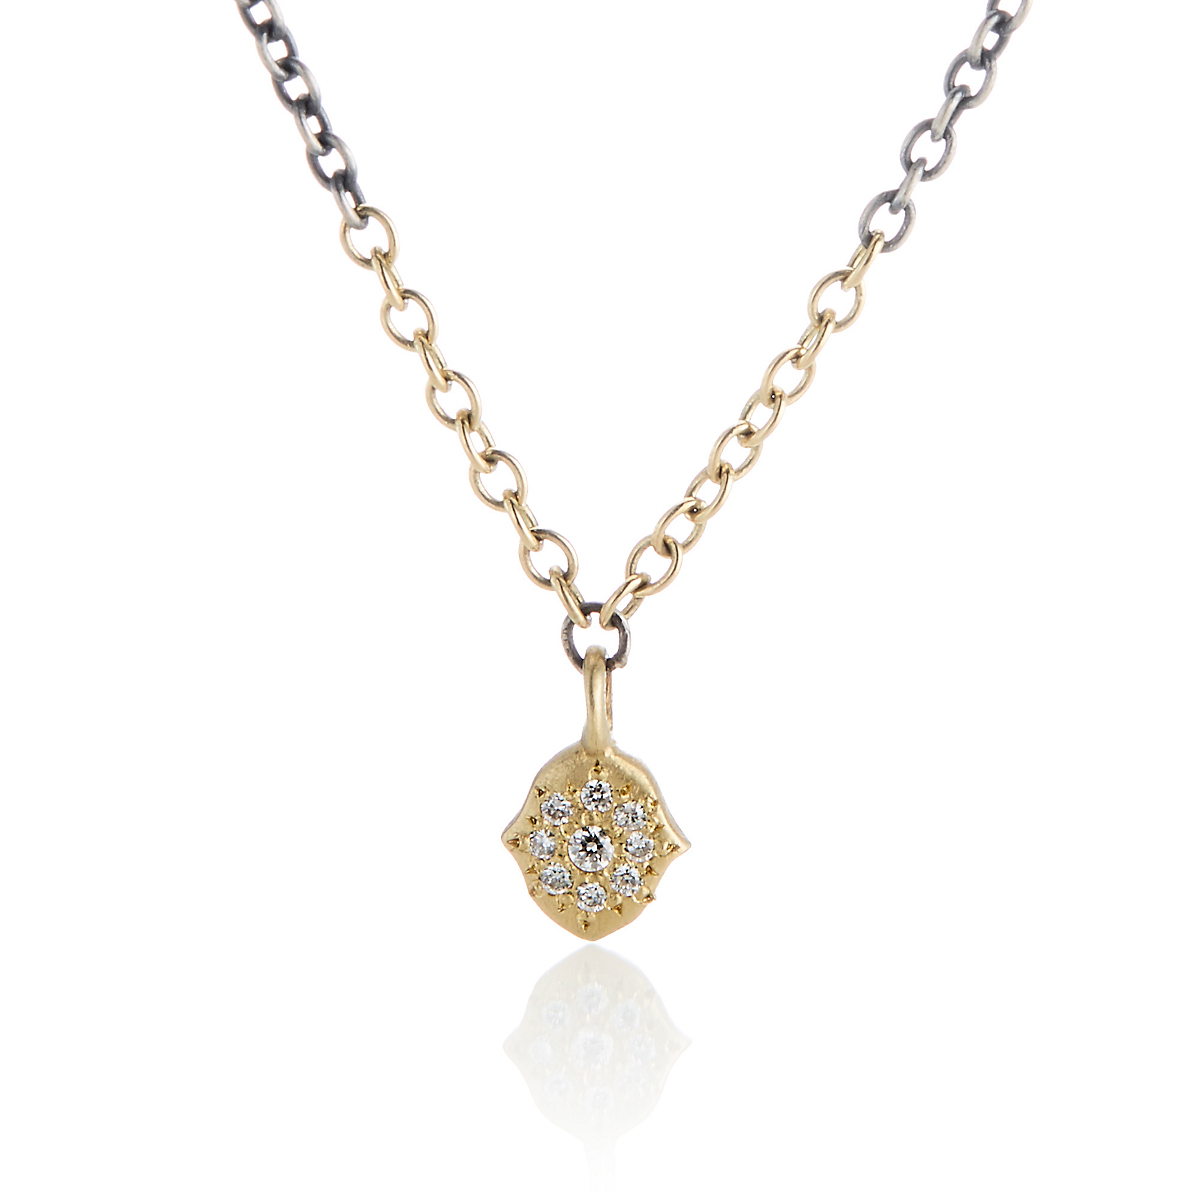 Adel Chefridi Petite Harmony Grace Charm Diamond Necklace